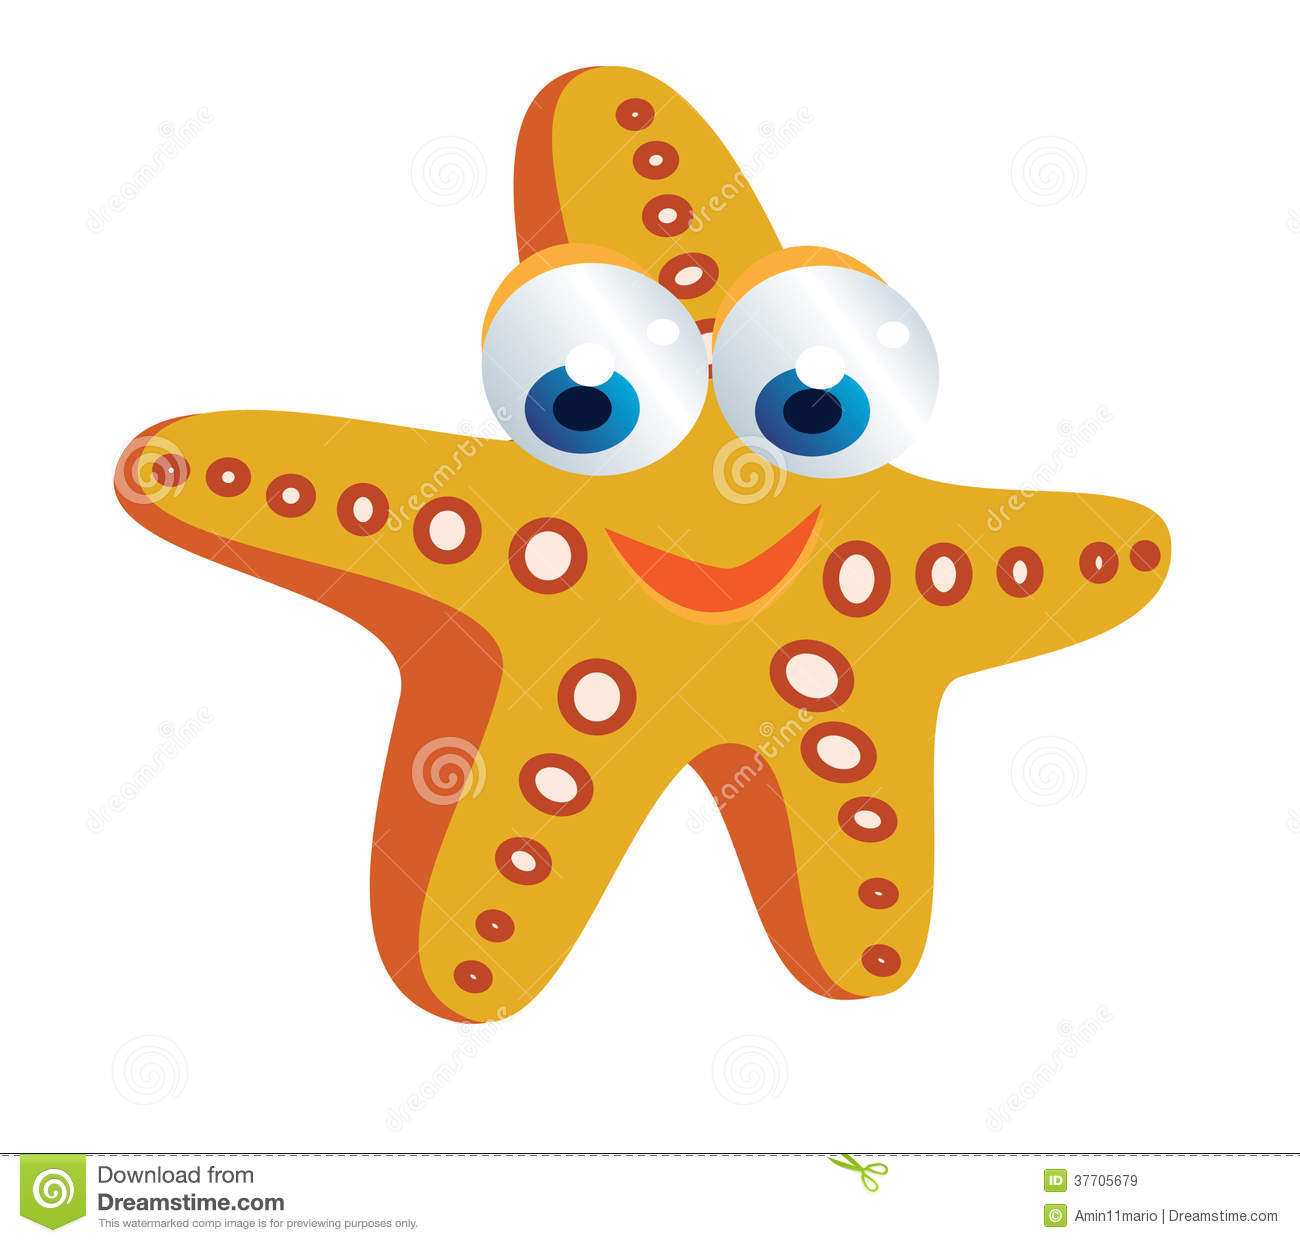 Starfish Cartoon Royalty Free Stock Images - Image: 37705679